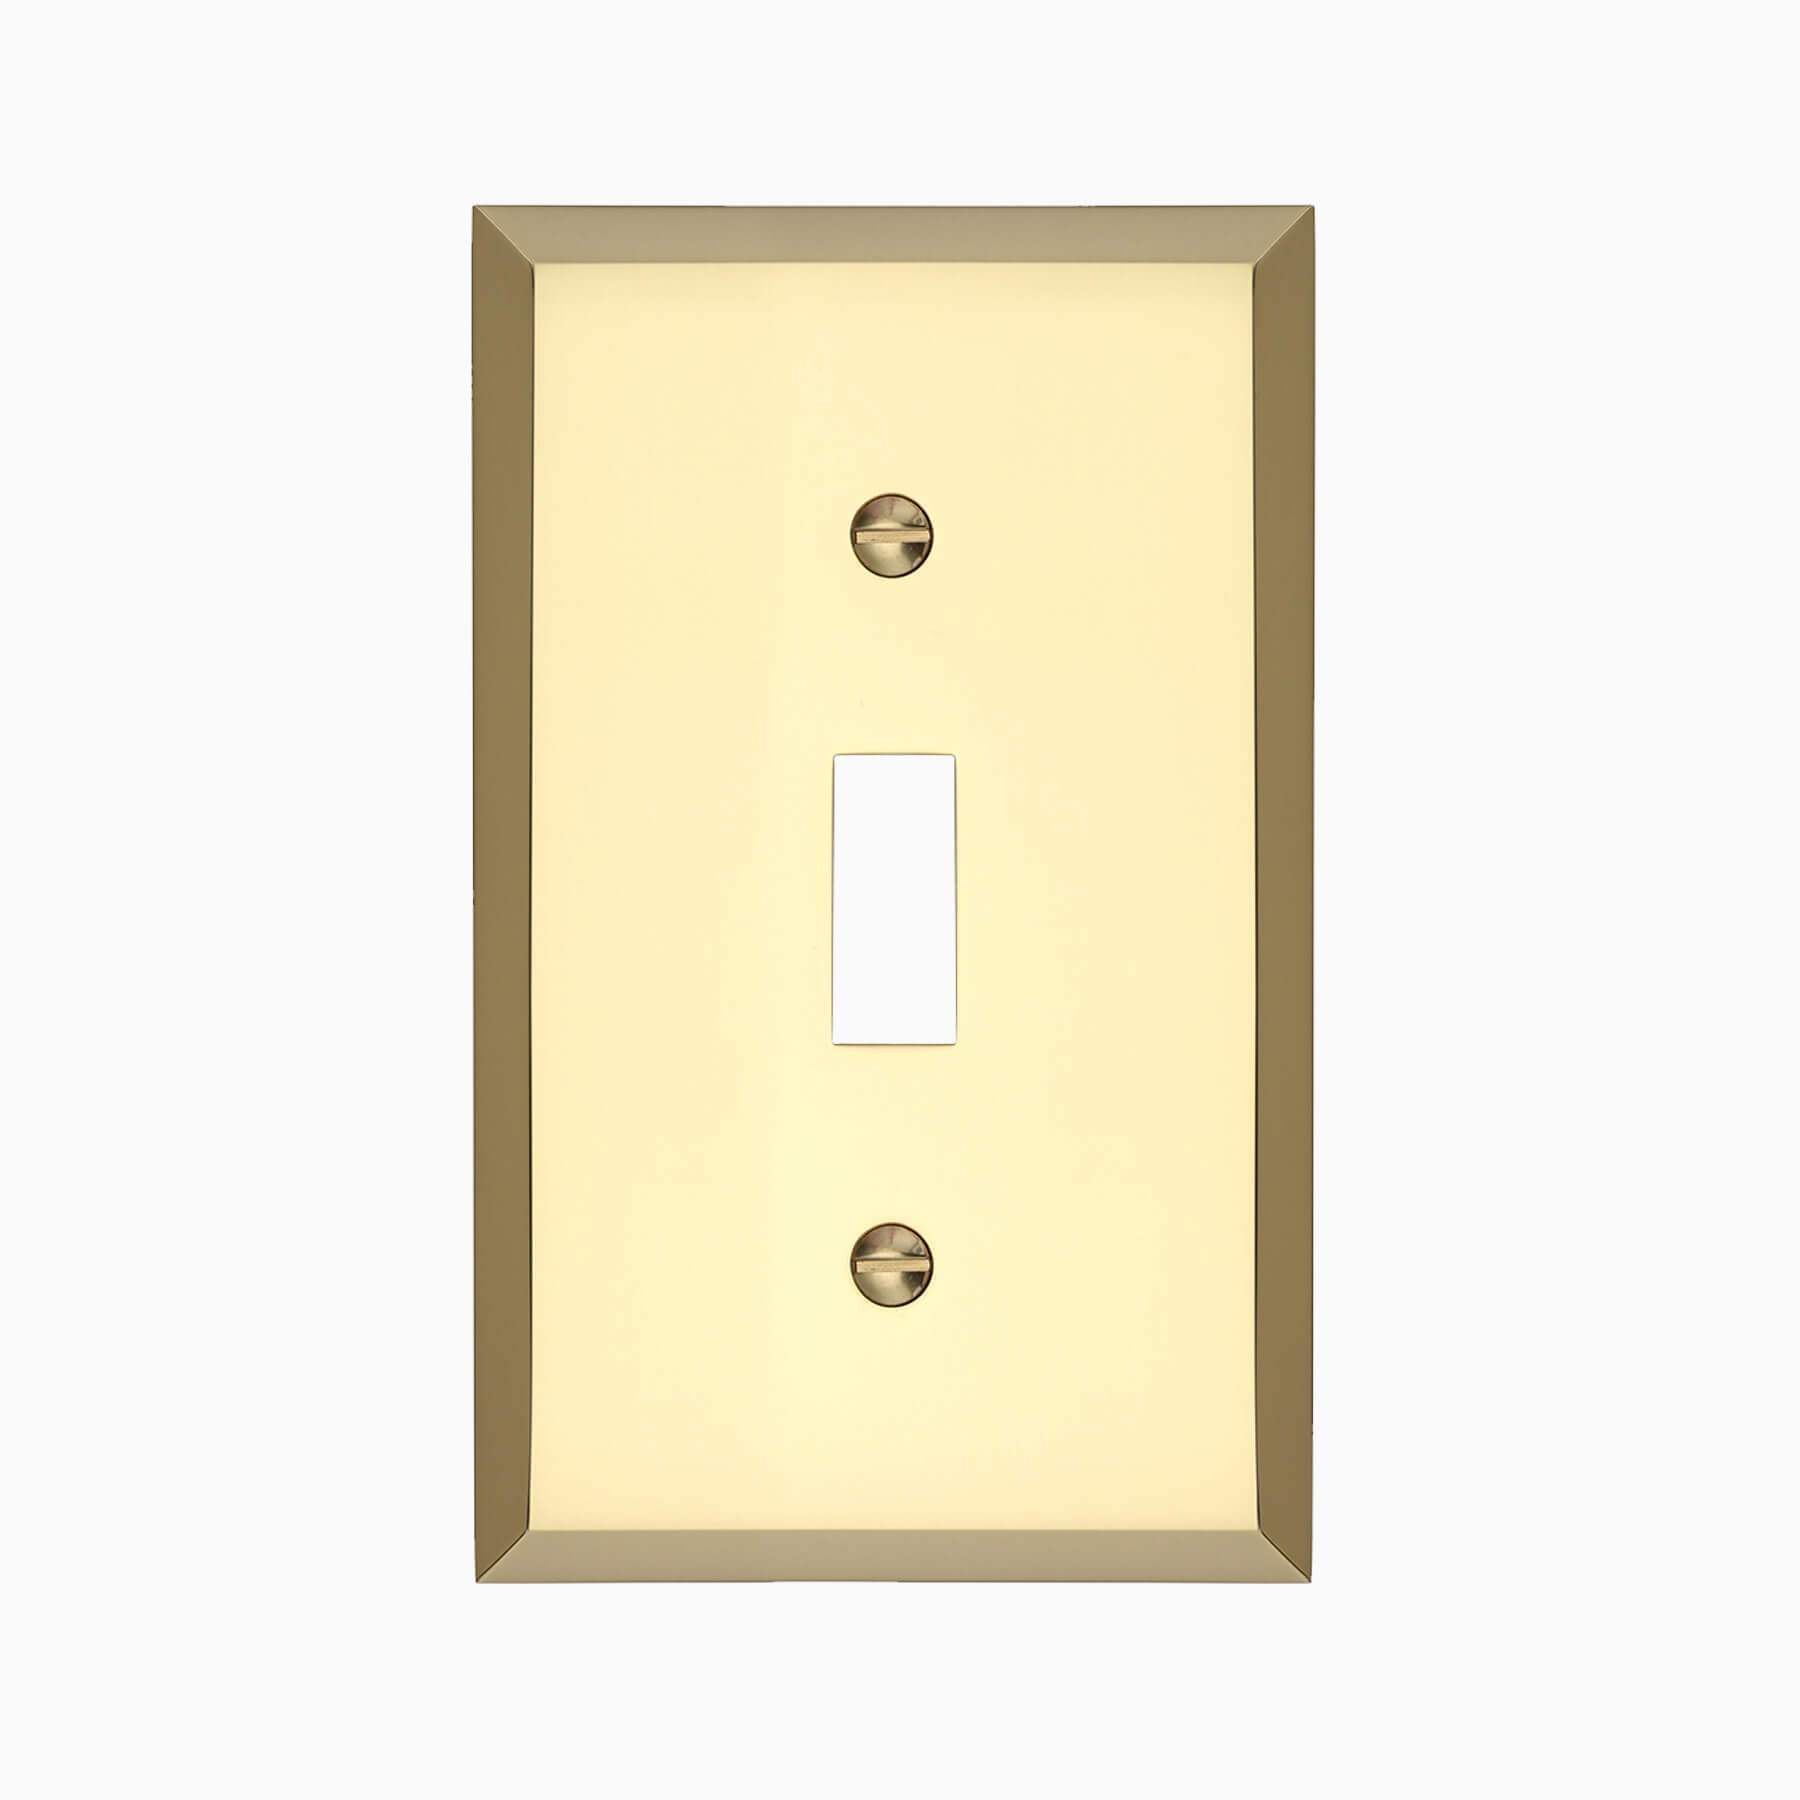 Brass Light Switch Covers Classy Graham Single Light Switch Cover  Wall Mounted Electrical Switch Design Decoration